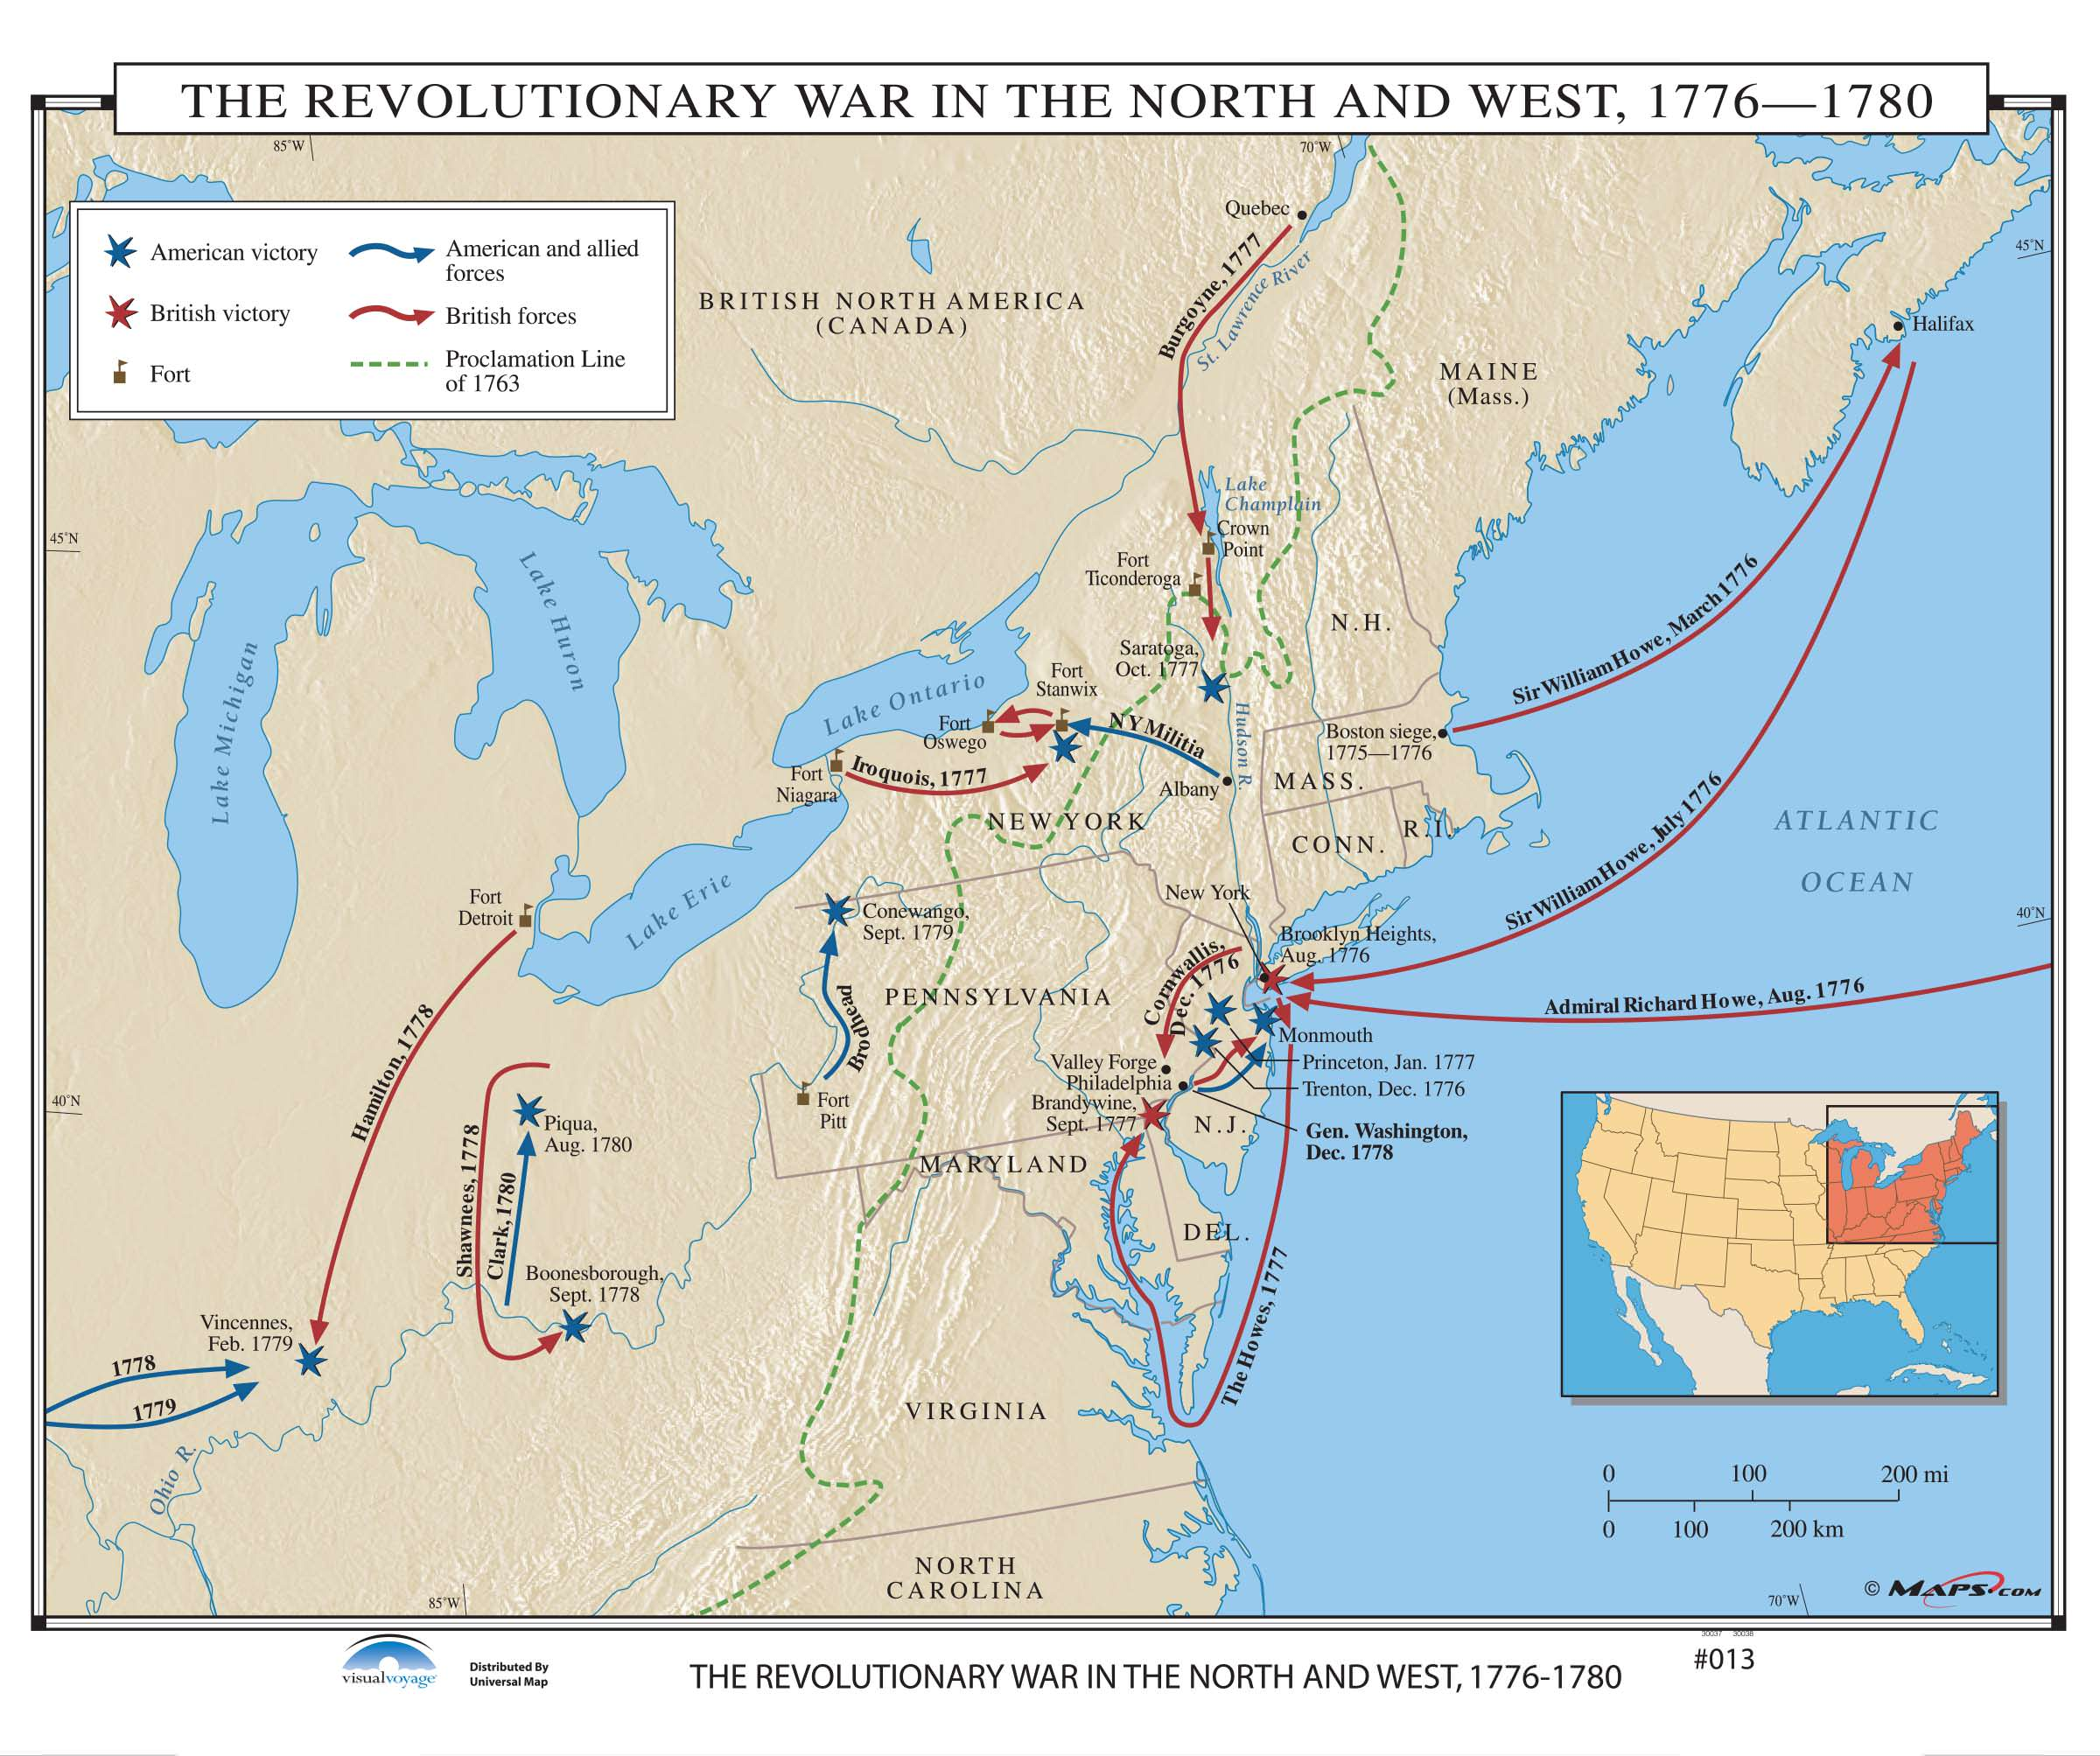 013 The Revolutionary War In The North Amp West